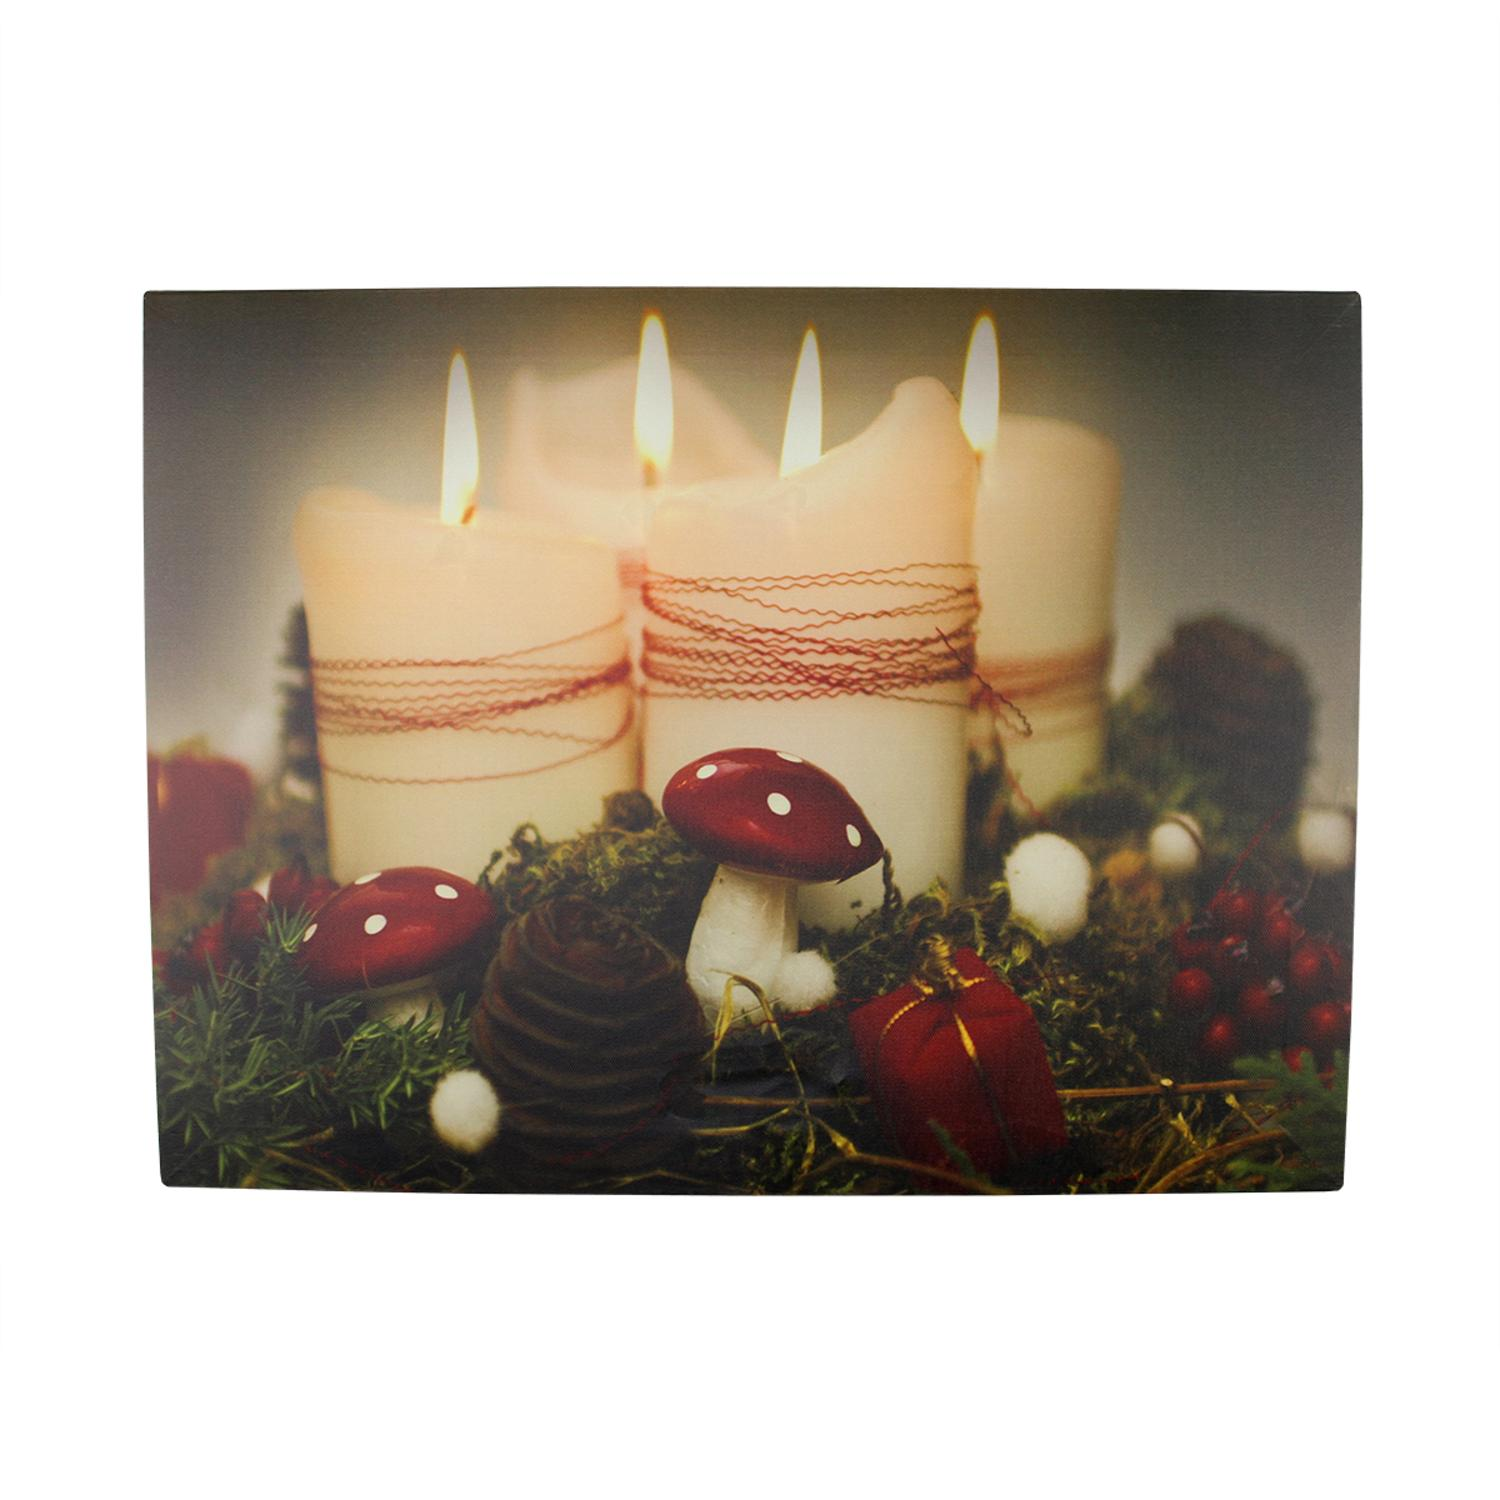 ''LED Lighted Flickering HOLIDAY Candles Christmas Canvas Wall Art 11.75'''' x 15.75''''''